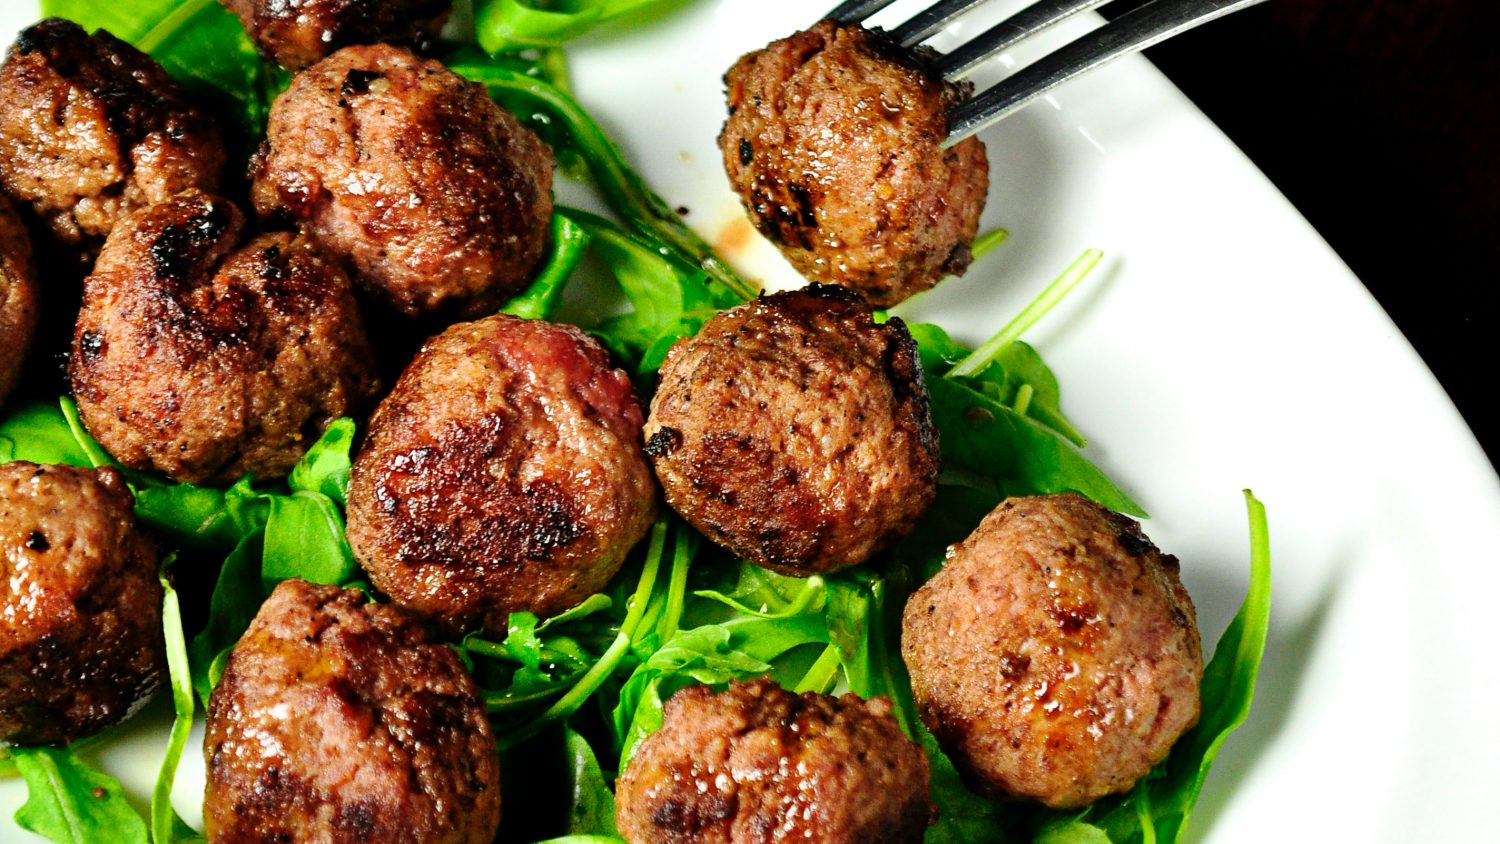 Meatballs and greens on a plate